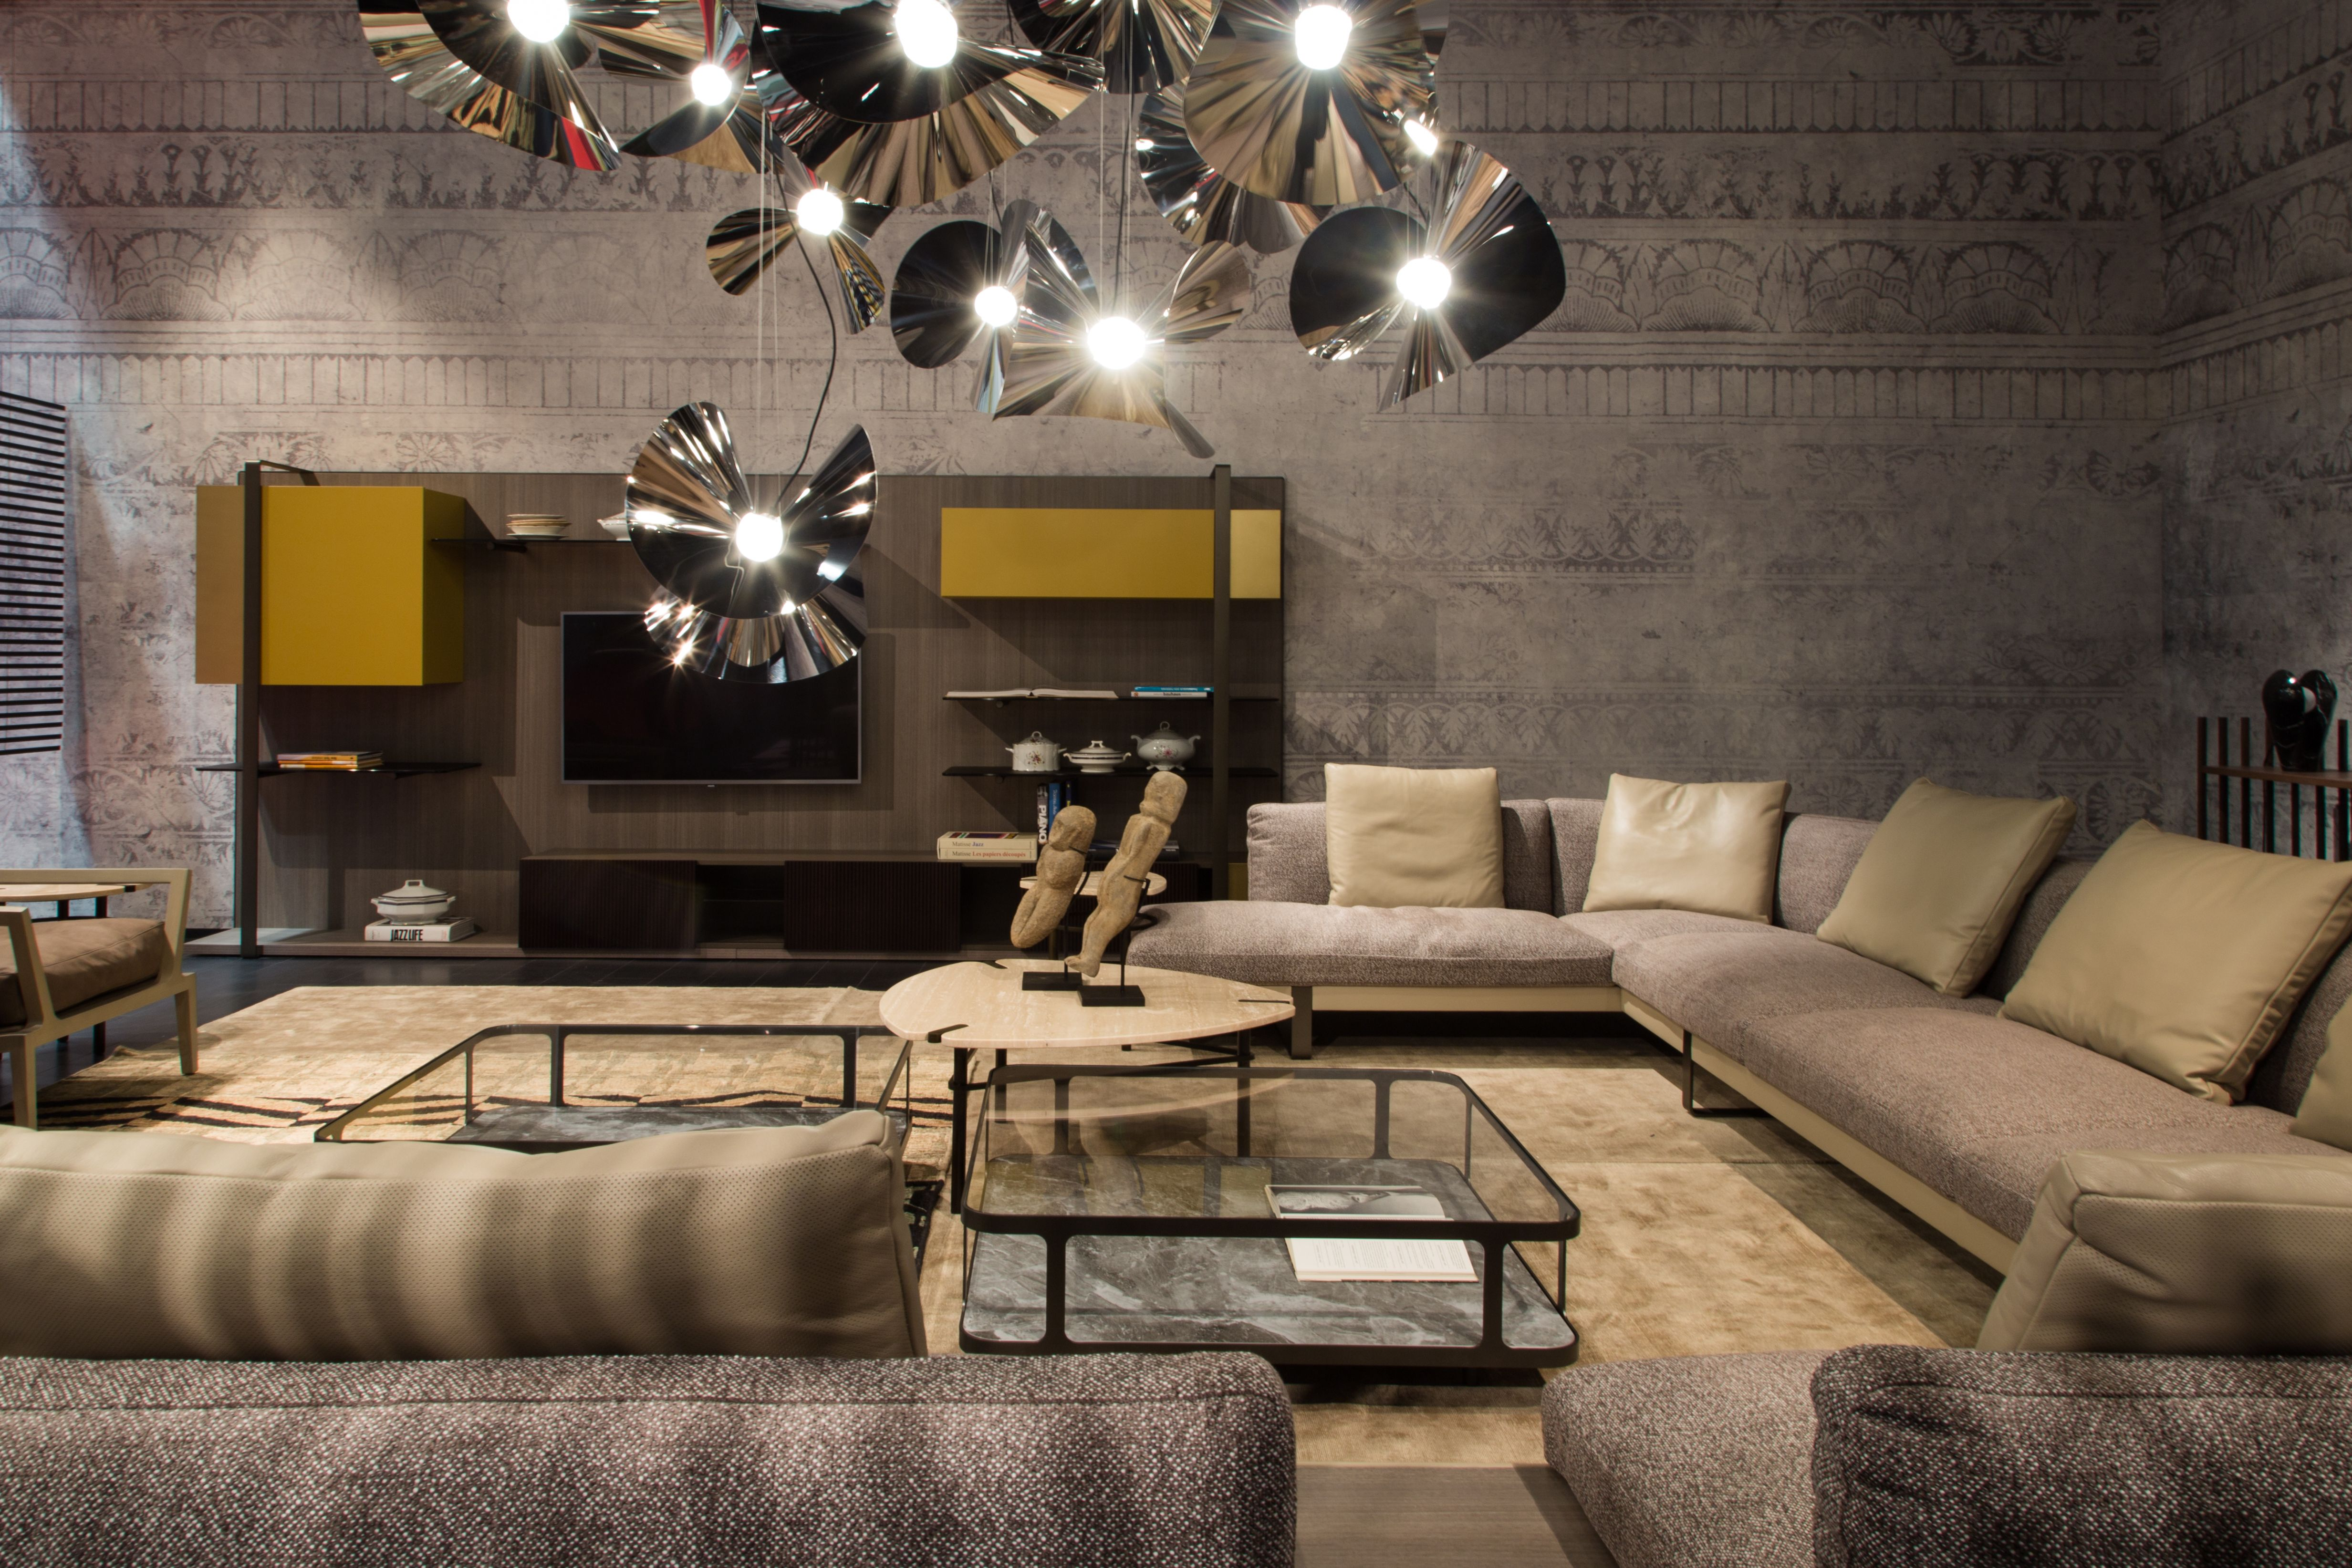 Roche Bobois Libretto Collection Designed By M Manzoni And R Tapinassi Casacade Cocktail Tables Designed By Fabrice Berrux Mariposa Lighting D Appartement